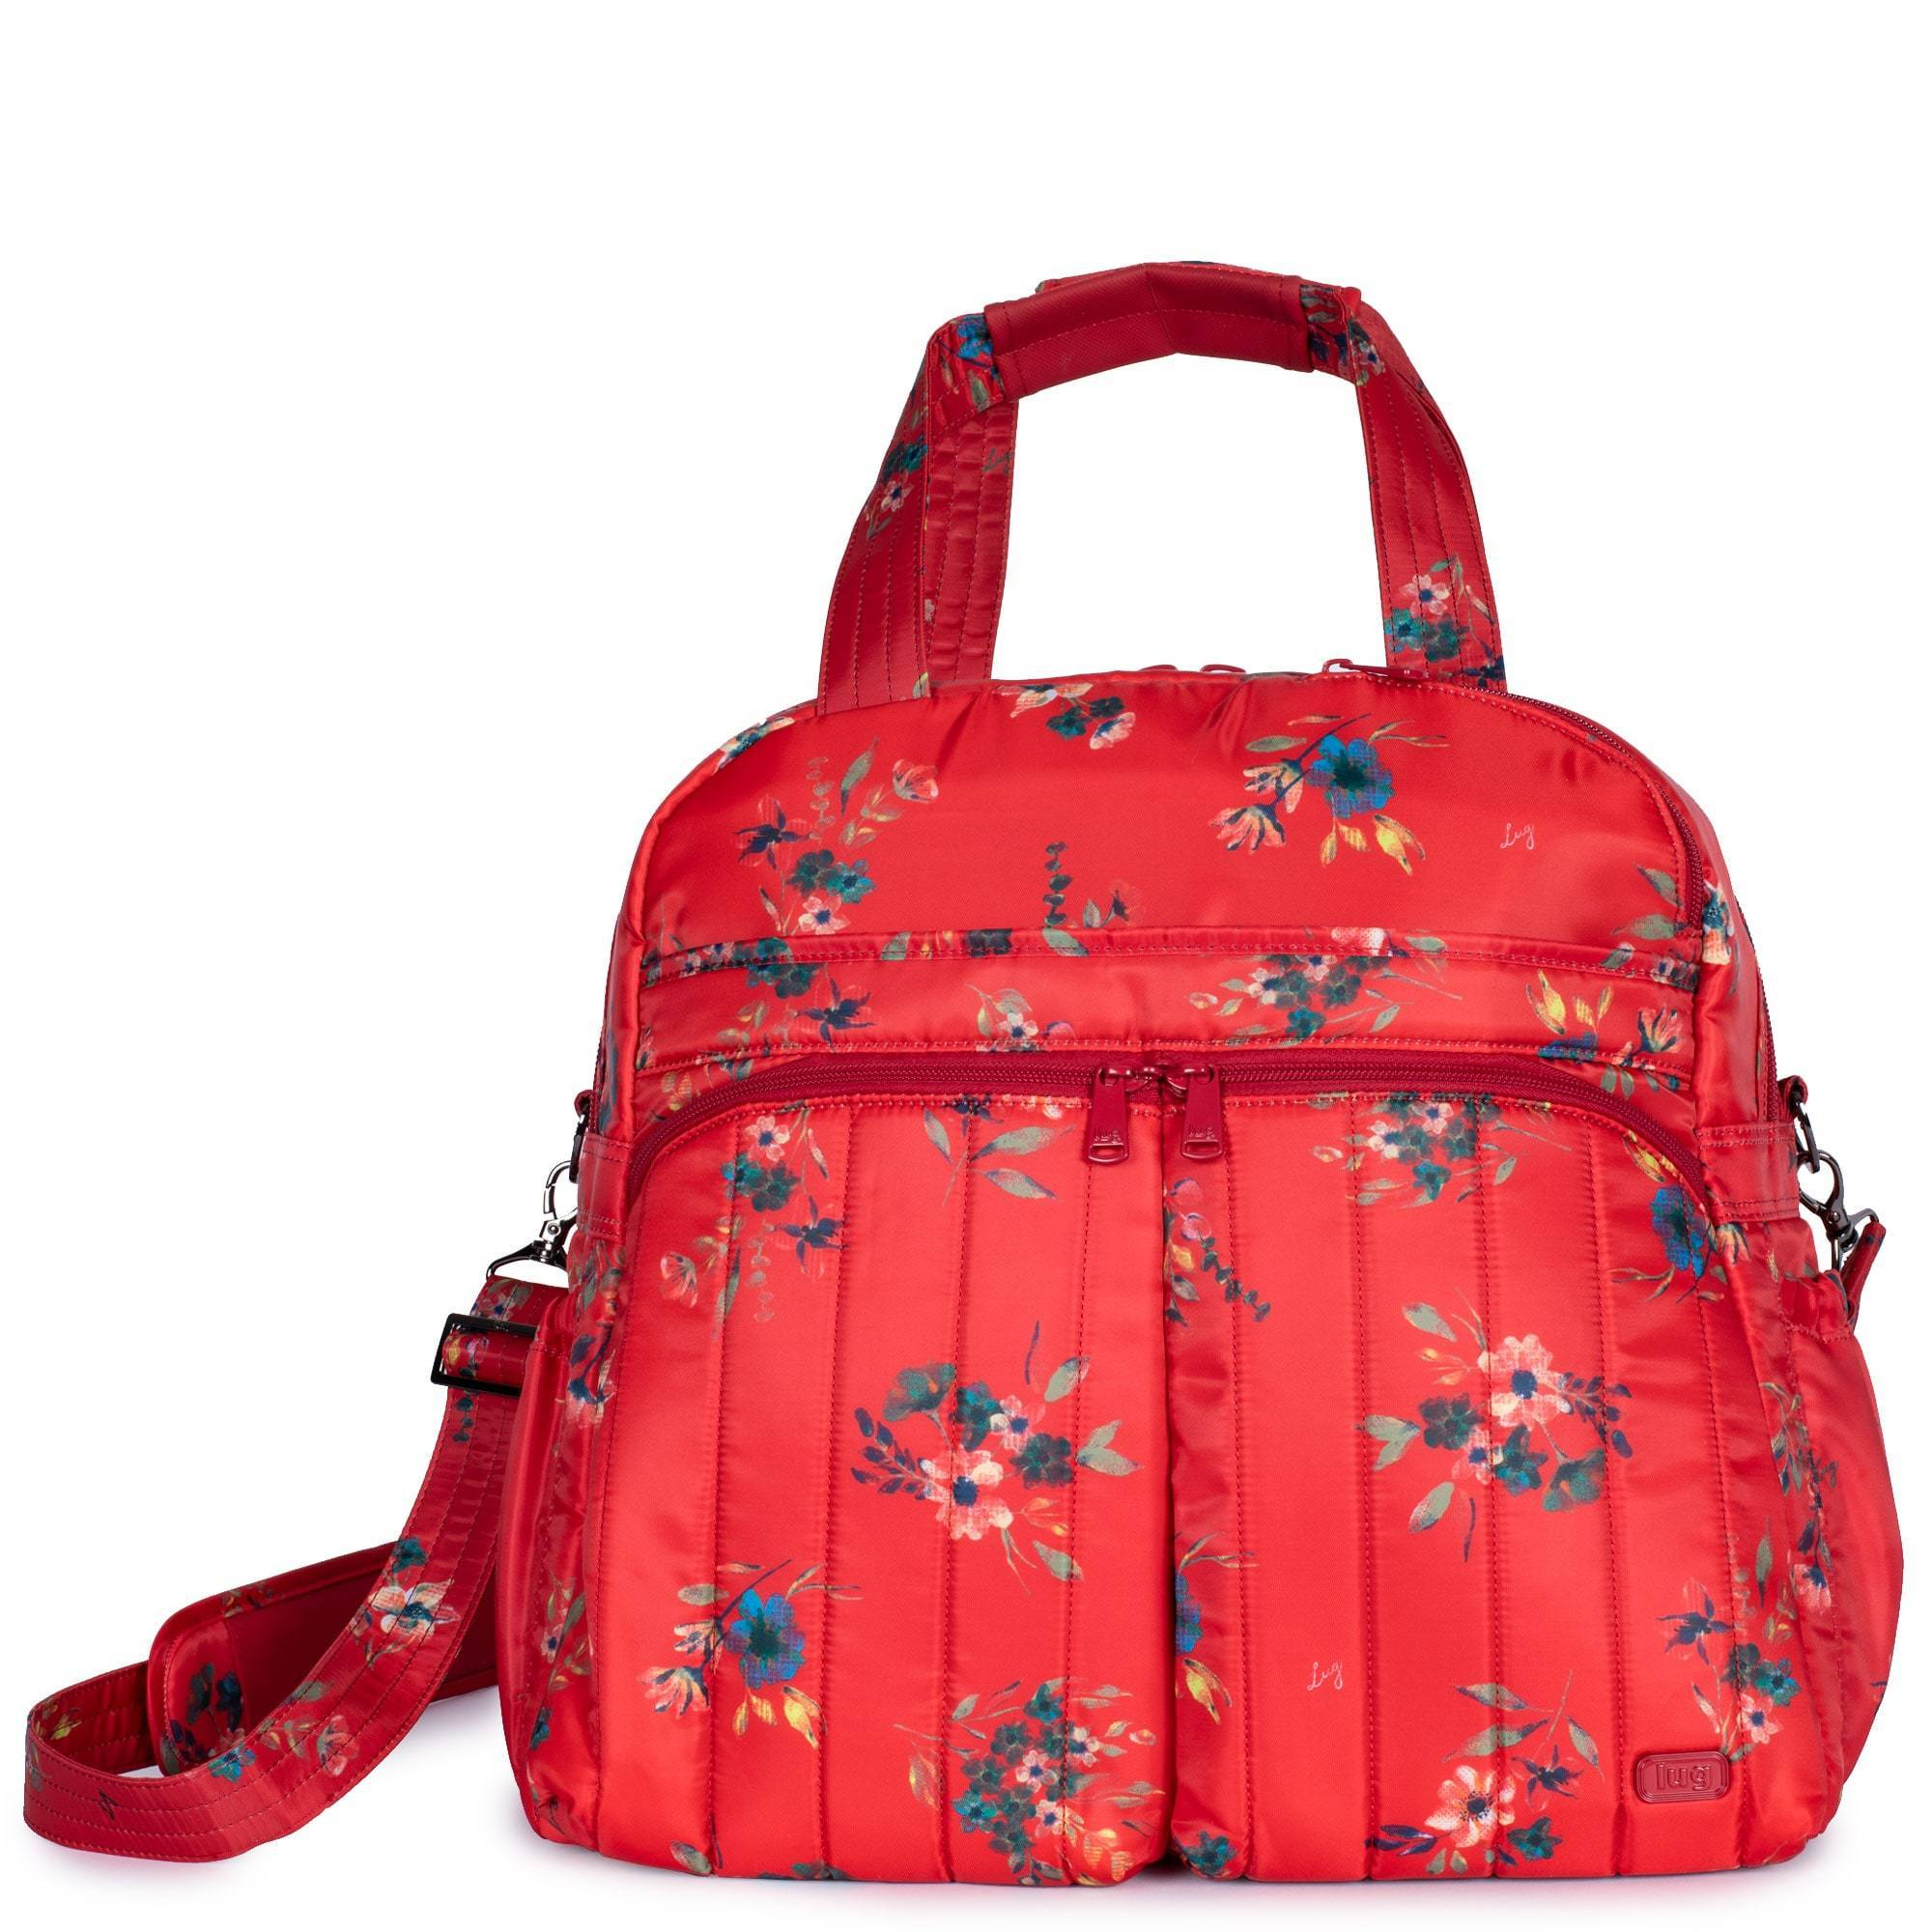 LUG - Boxer - Workout & Weekend Bag - Bouquet Red